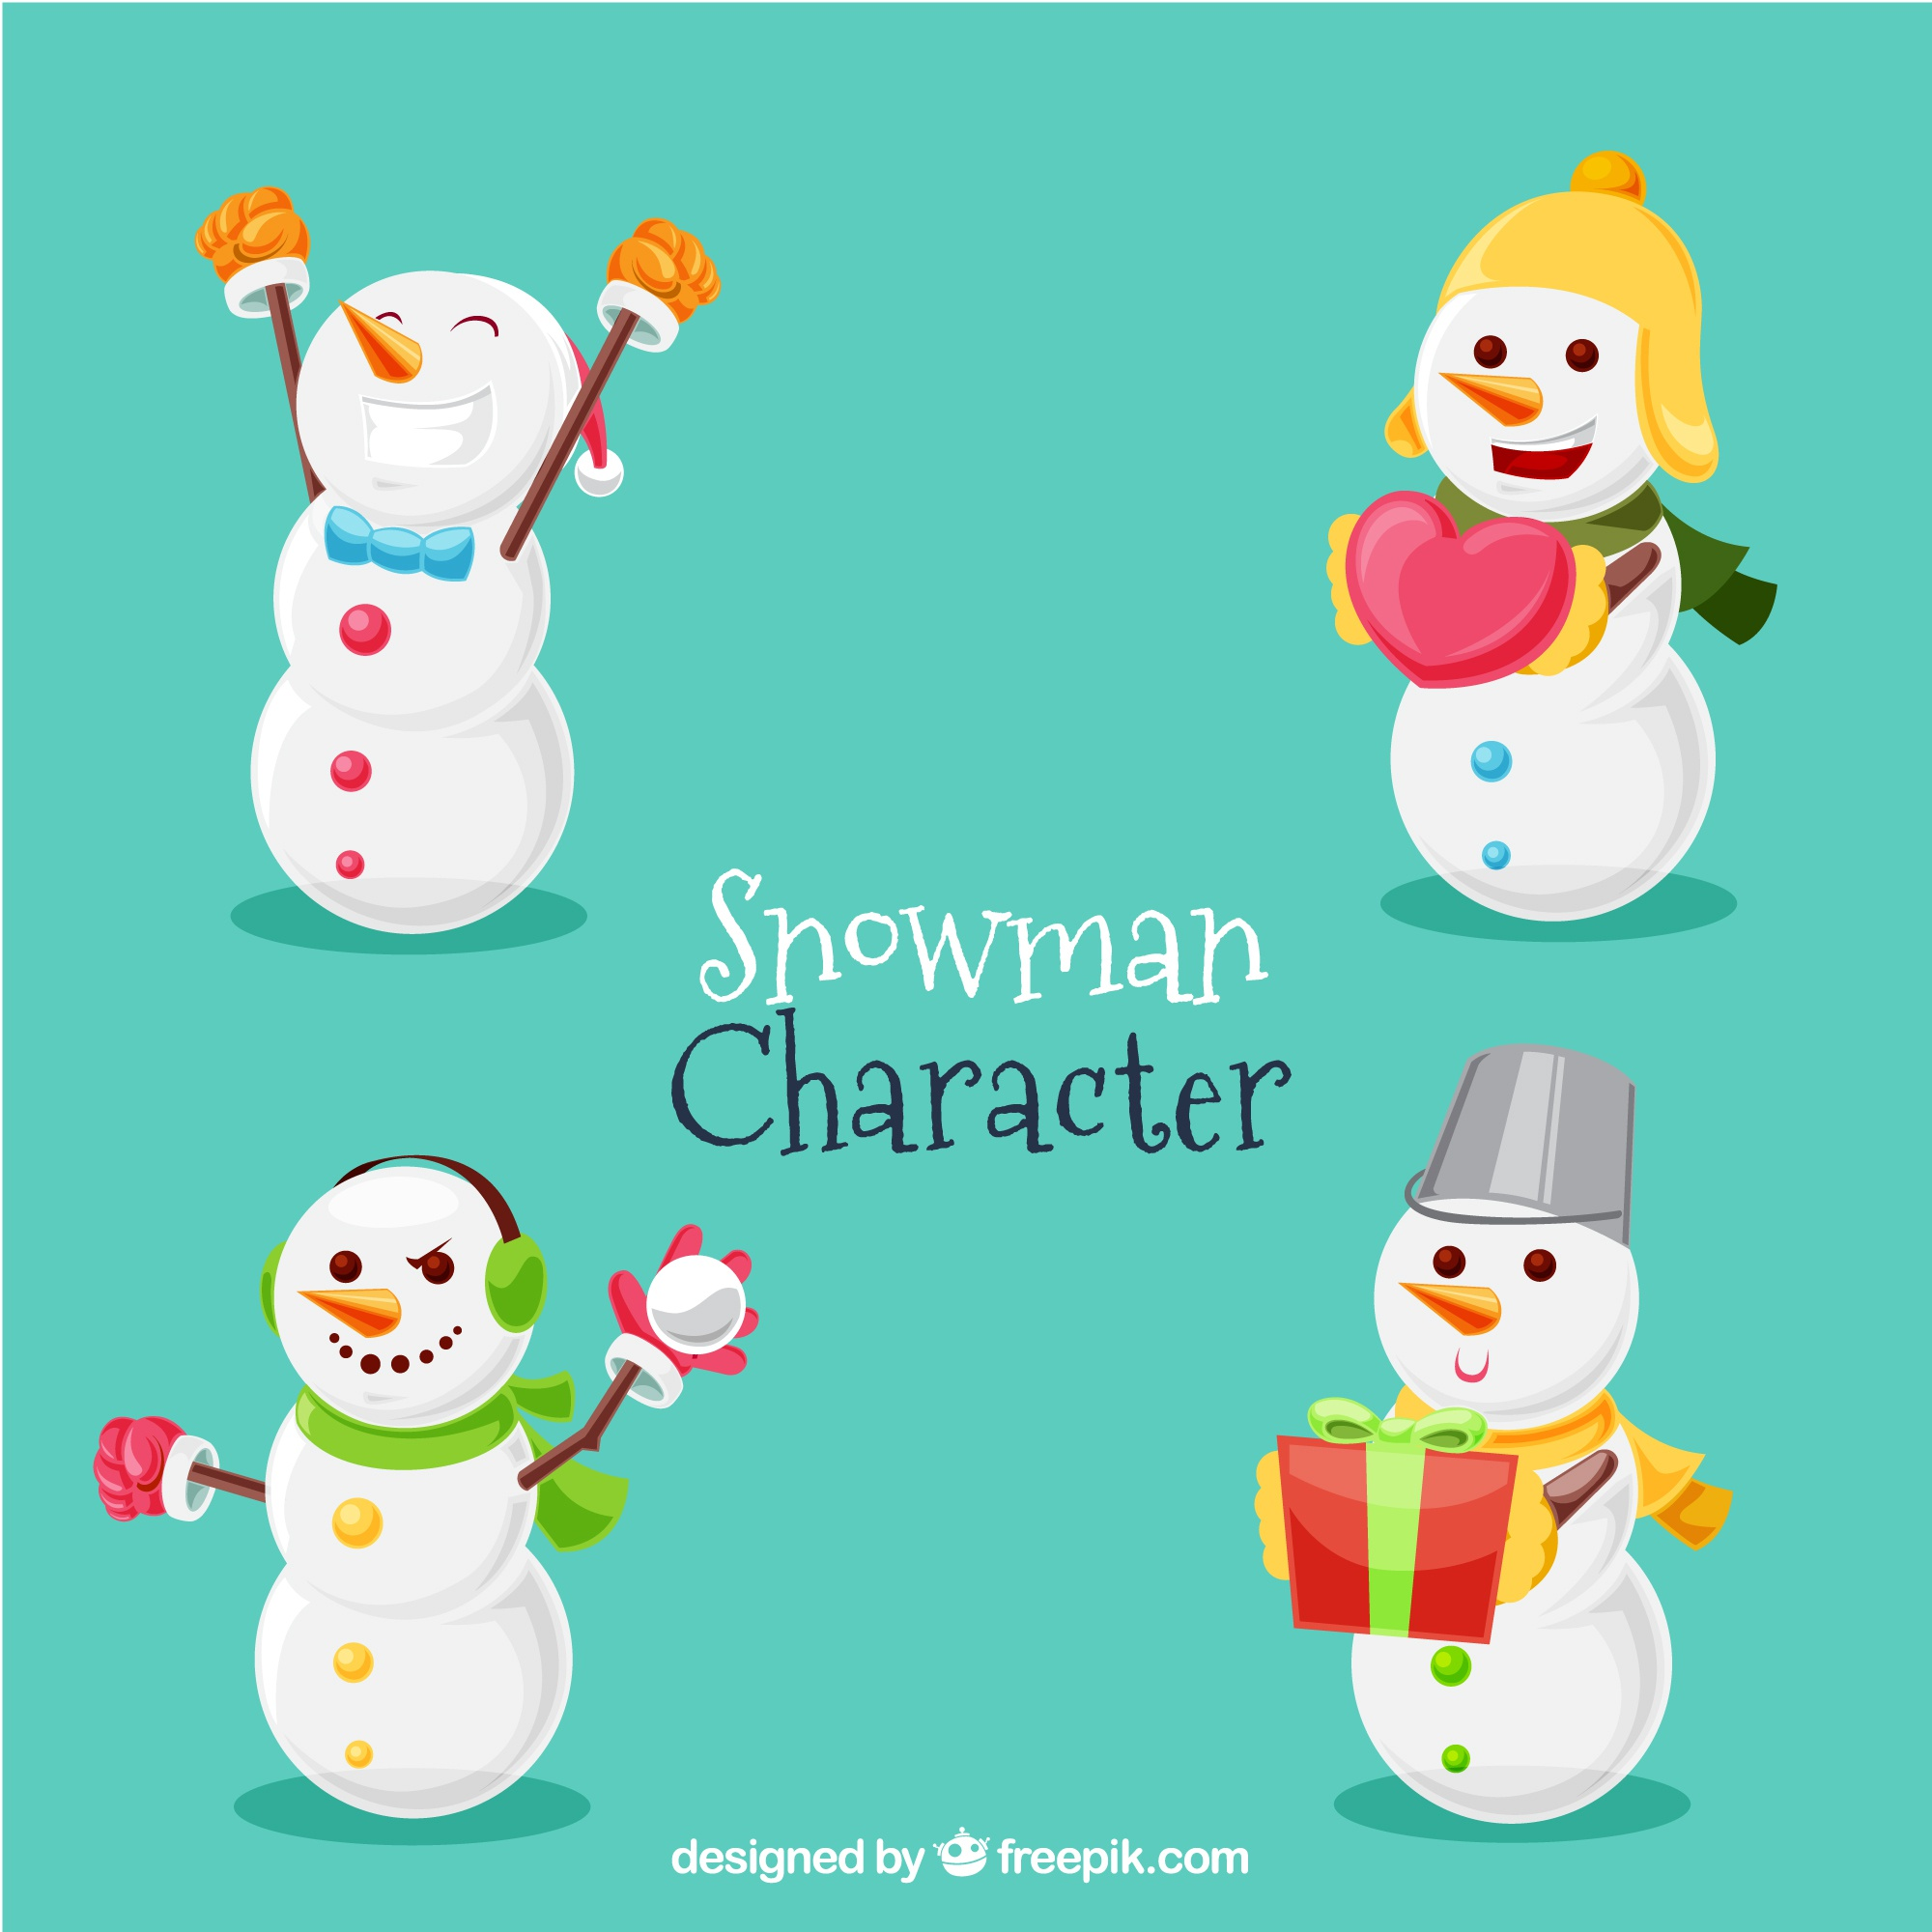 Snow characters with christmas accessories